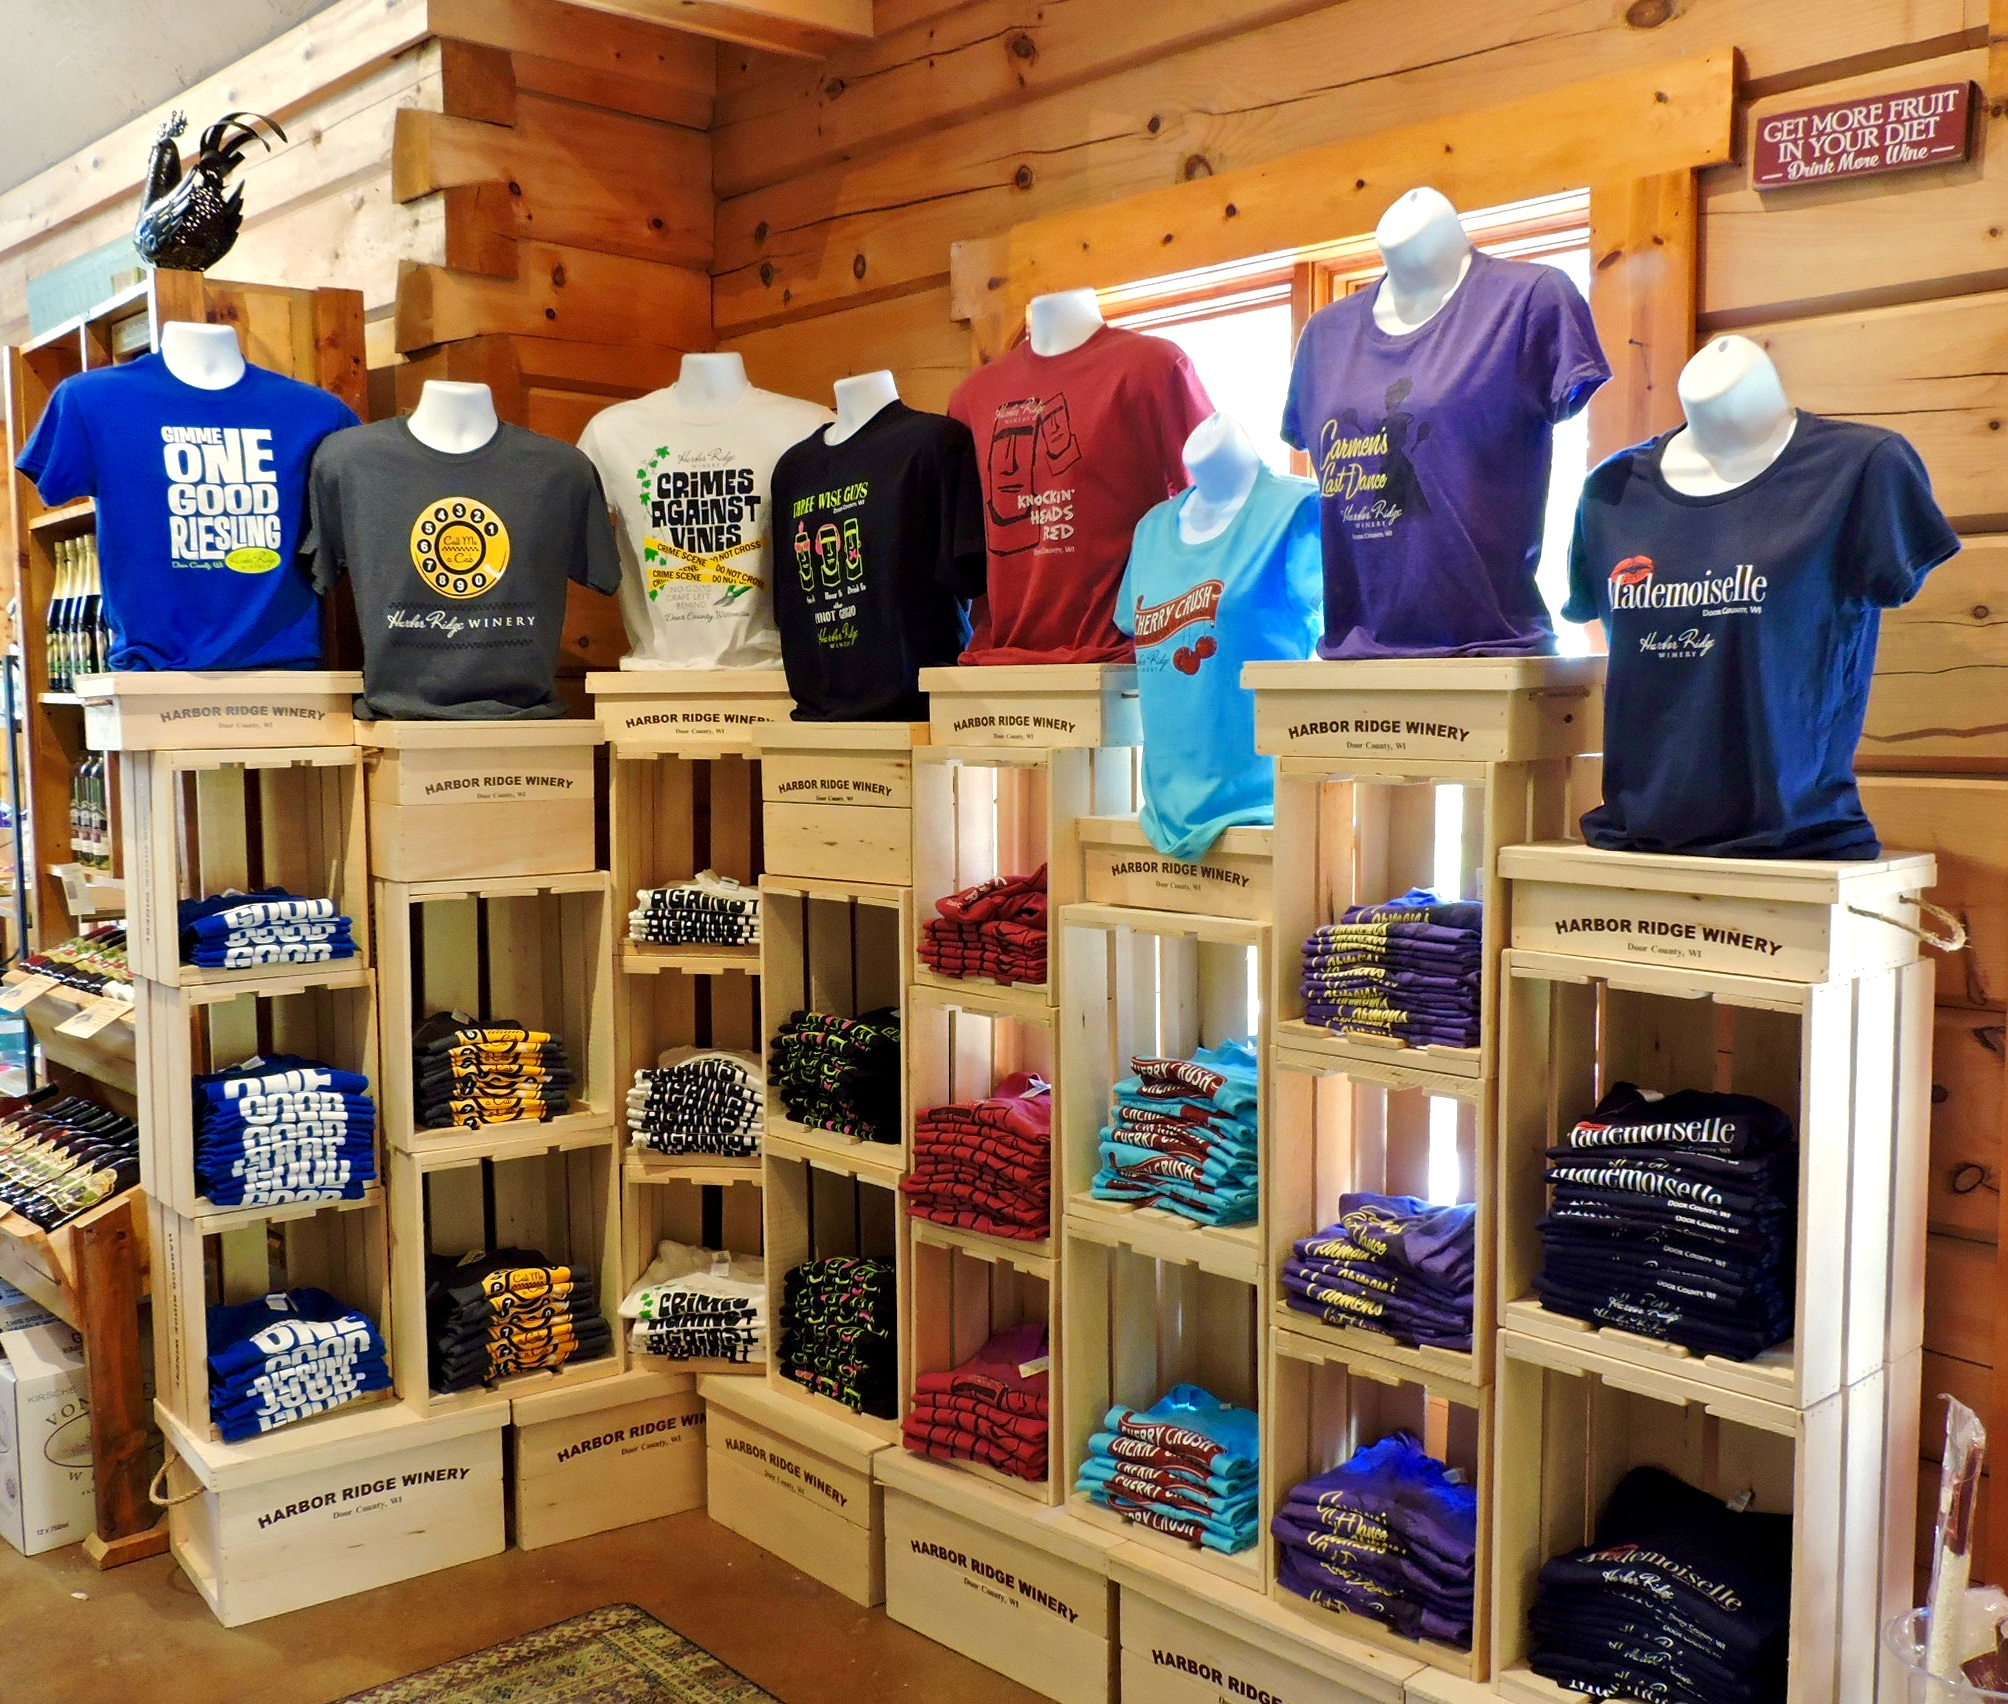 For those of you who want to shout your love of Harbor Ridge Winery from the rooftops, there are Harbor Ridge Winery t-shirts with your favorite wine labels. We have sizes ranging from Small – 3x Large.